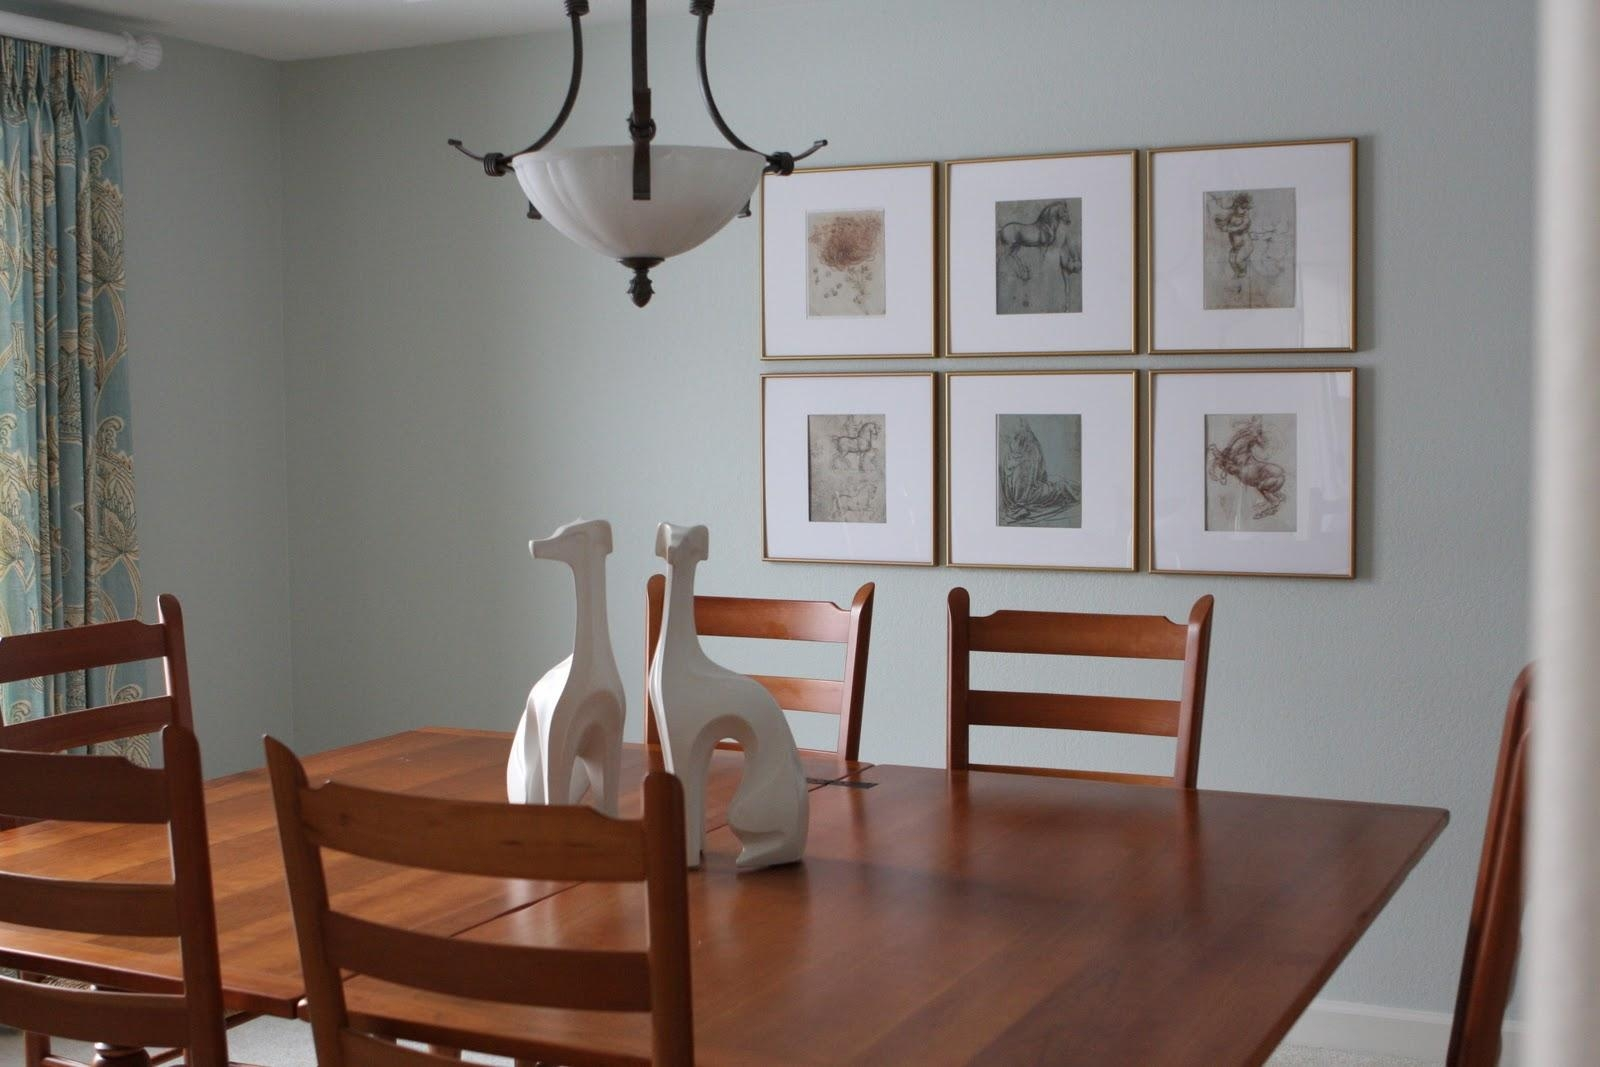 Dining Room Wall Art – Ideas For Home Interior Decoration Pertaining To Dining Wall Art (View 2 of 20)